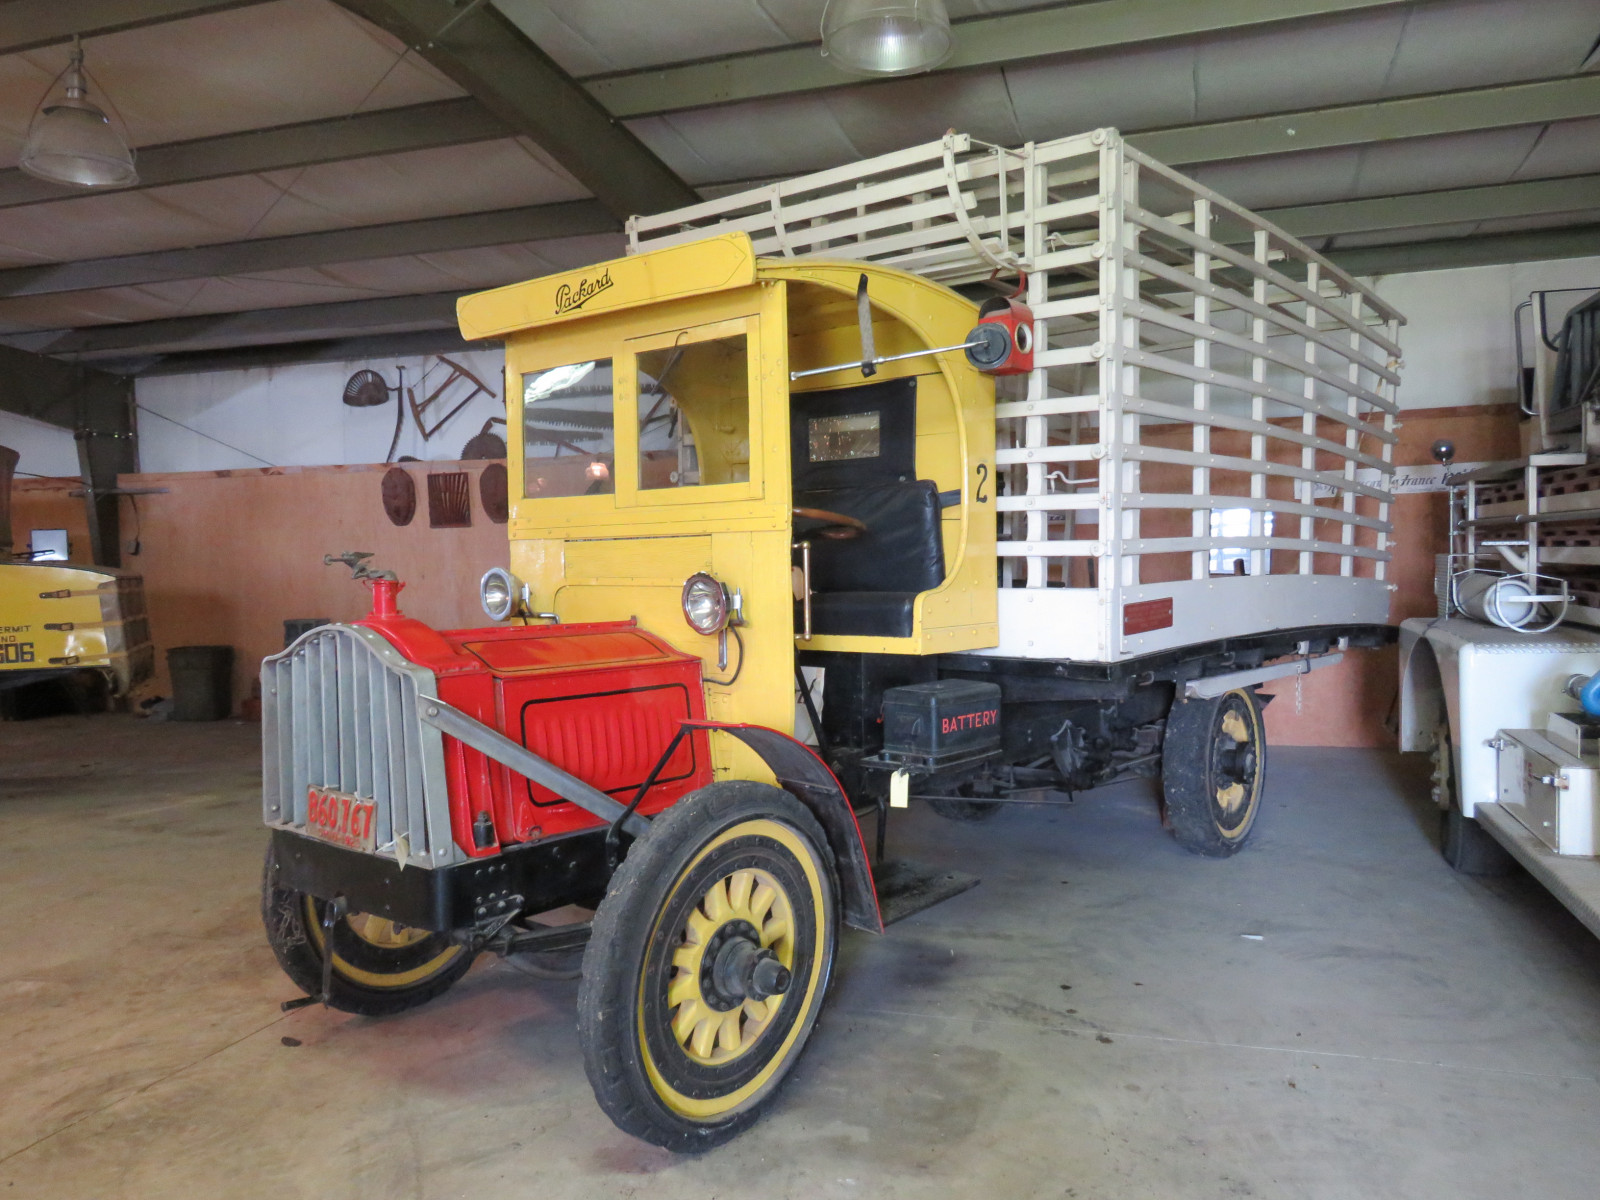 1923 Packard 2 ton Truck - Image 2